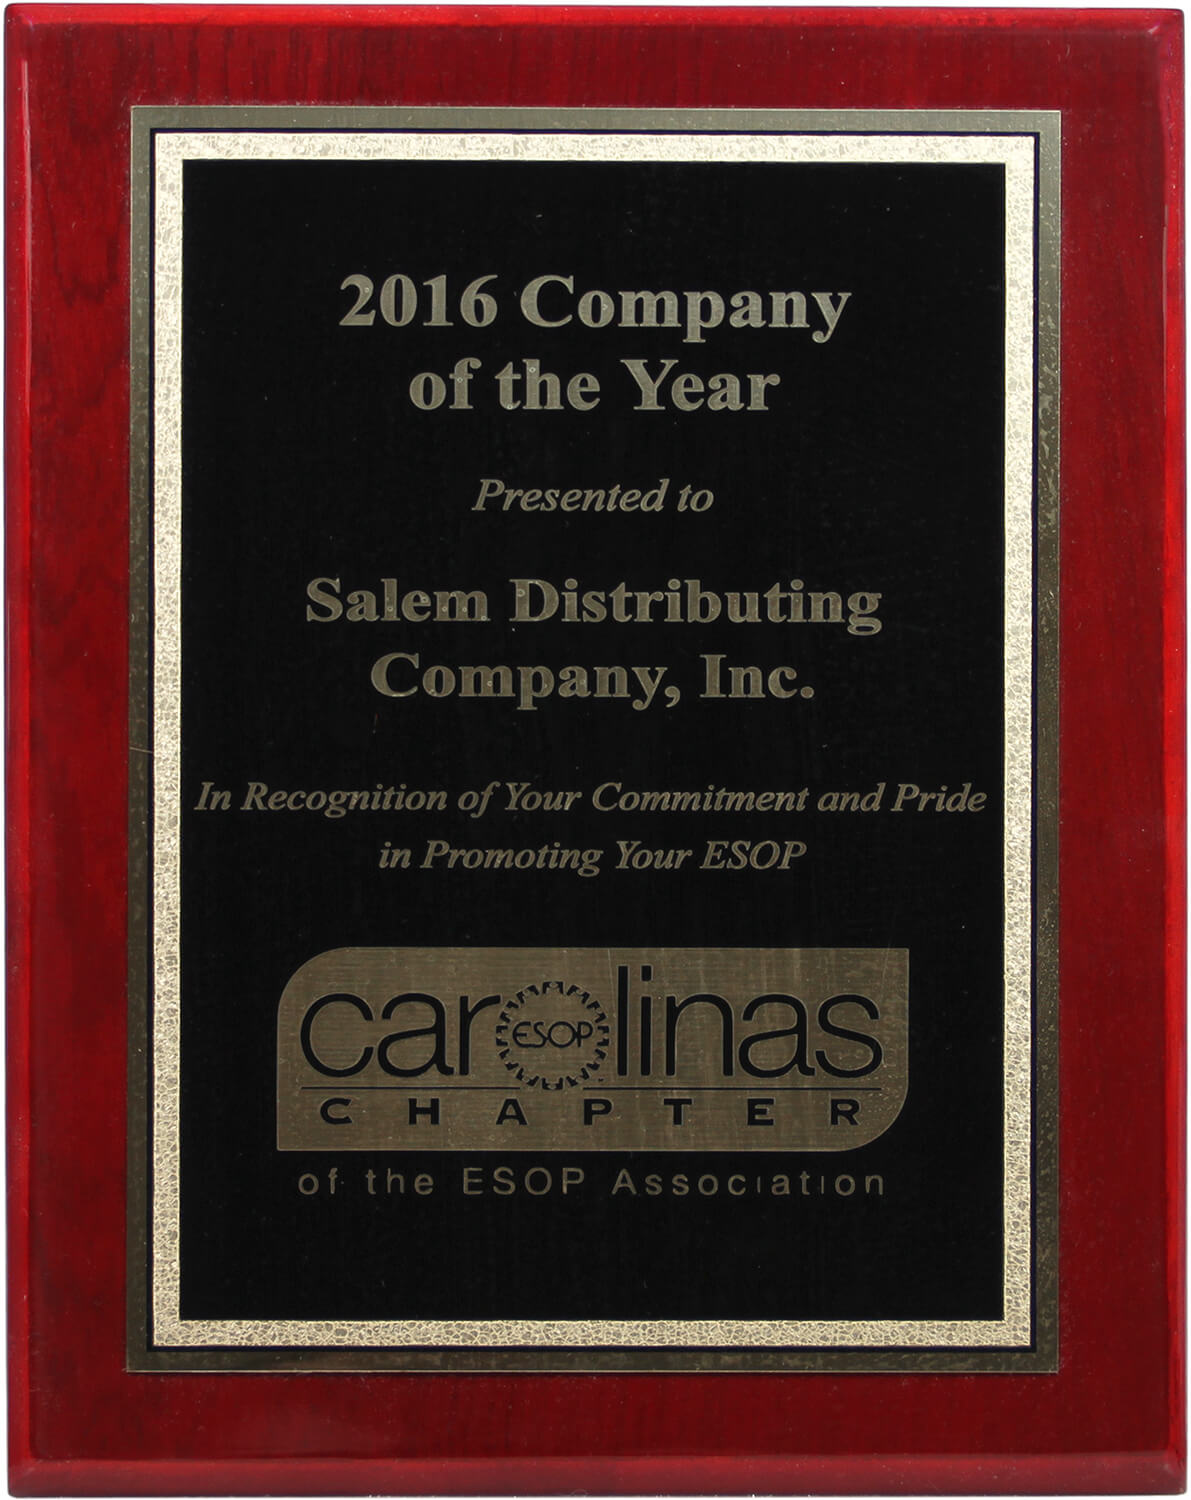 ESOP Company of the Year 2016